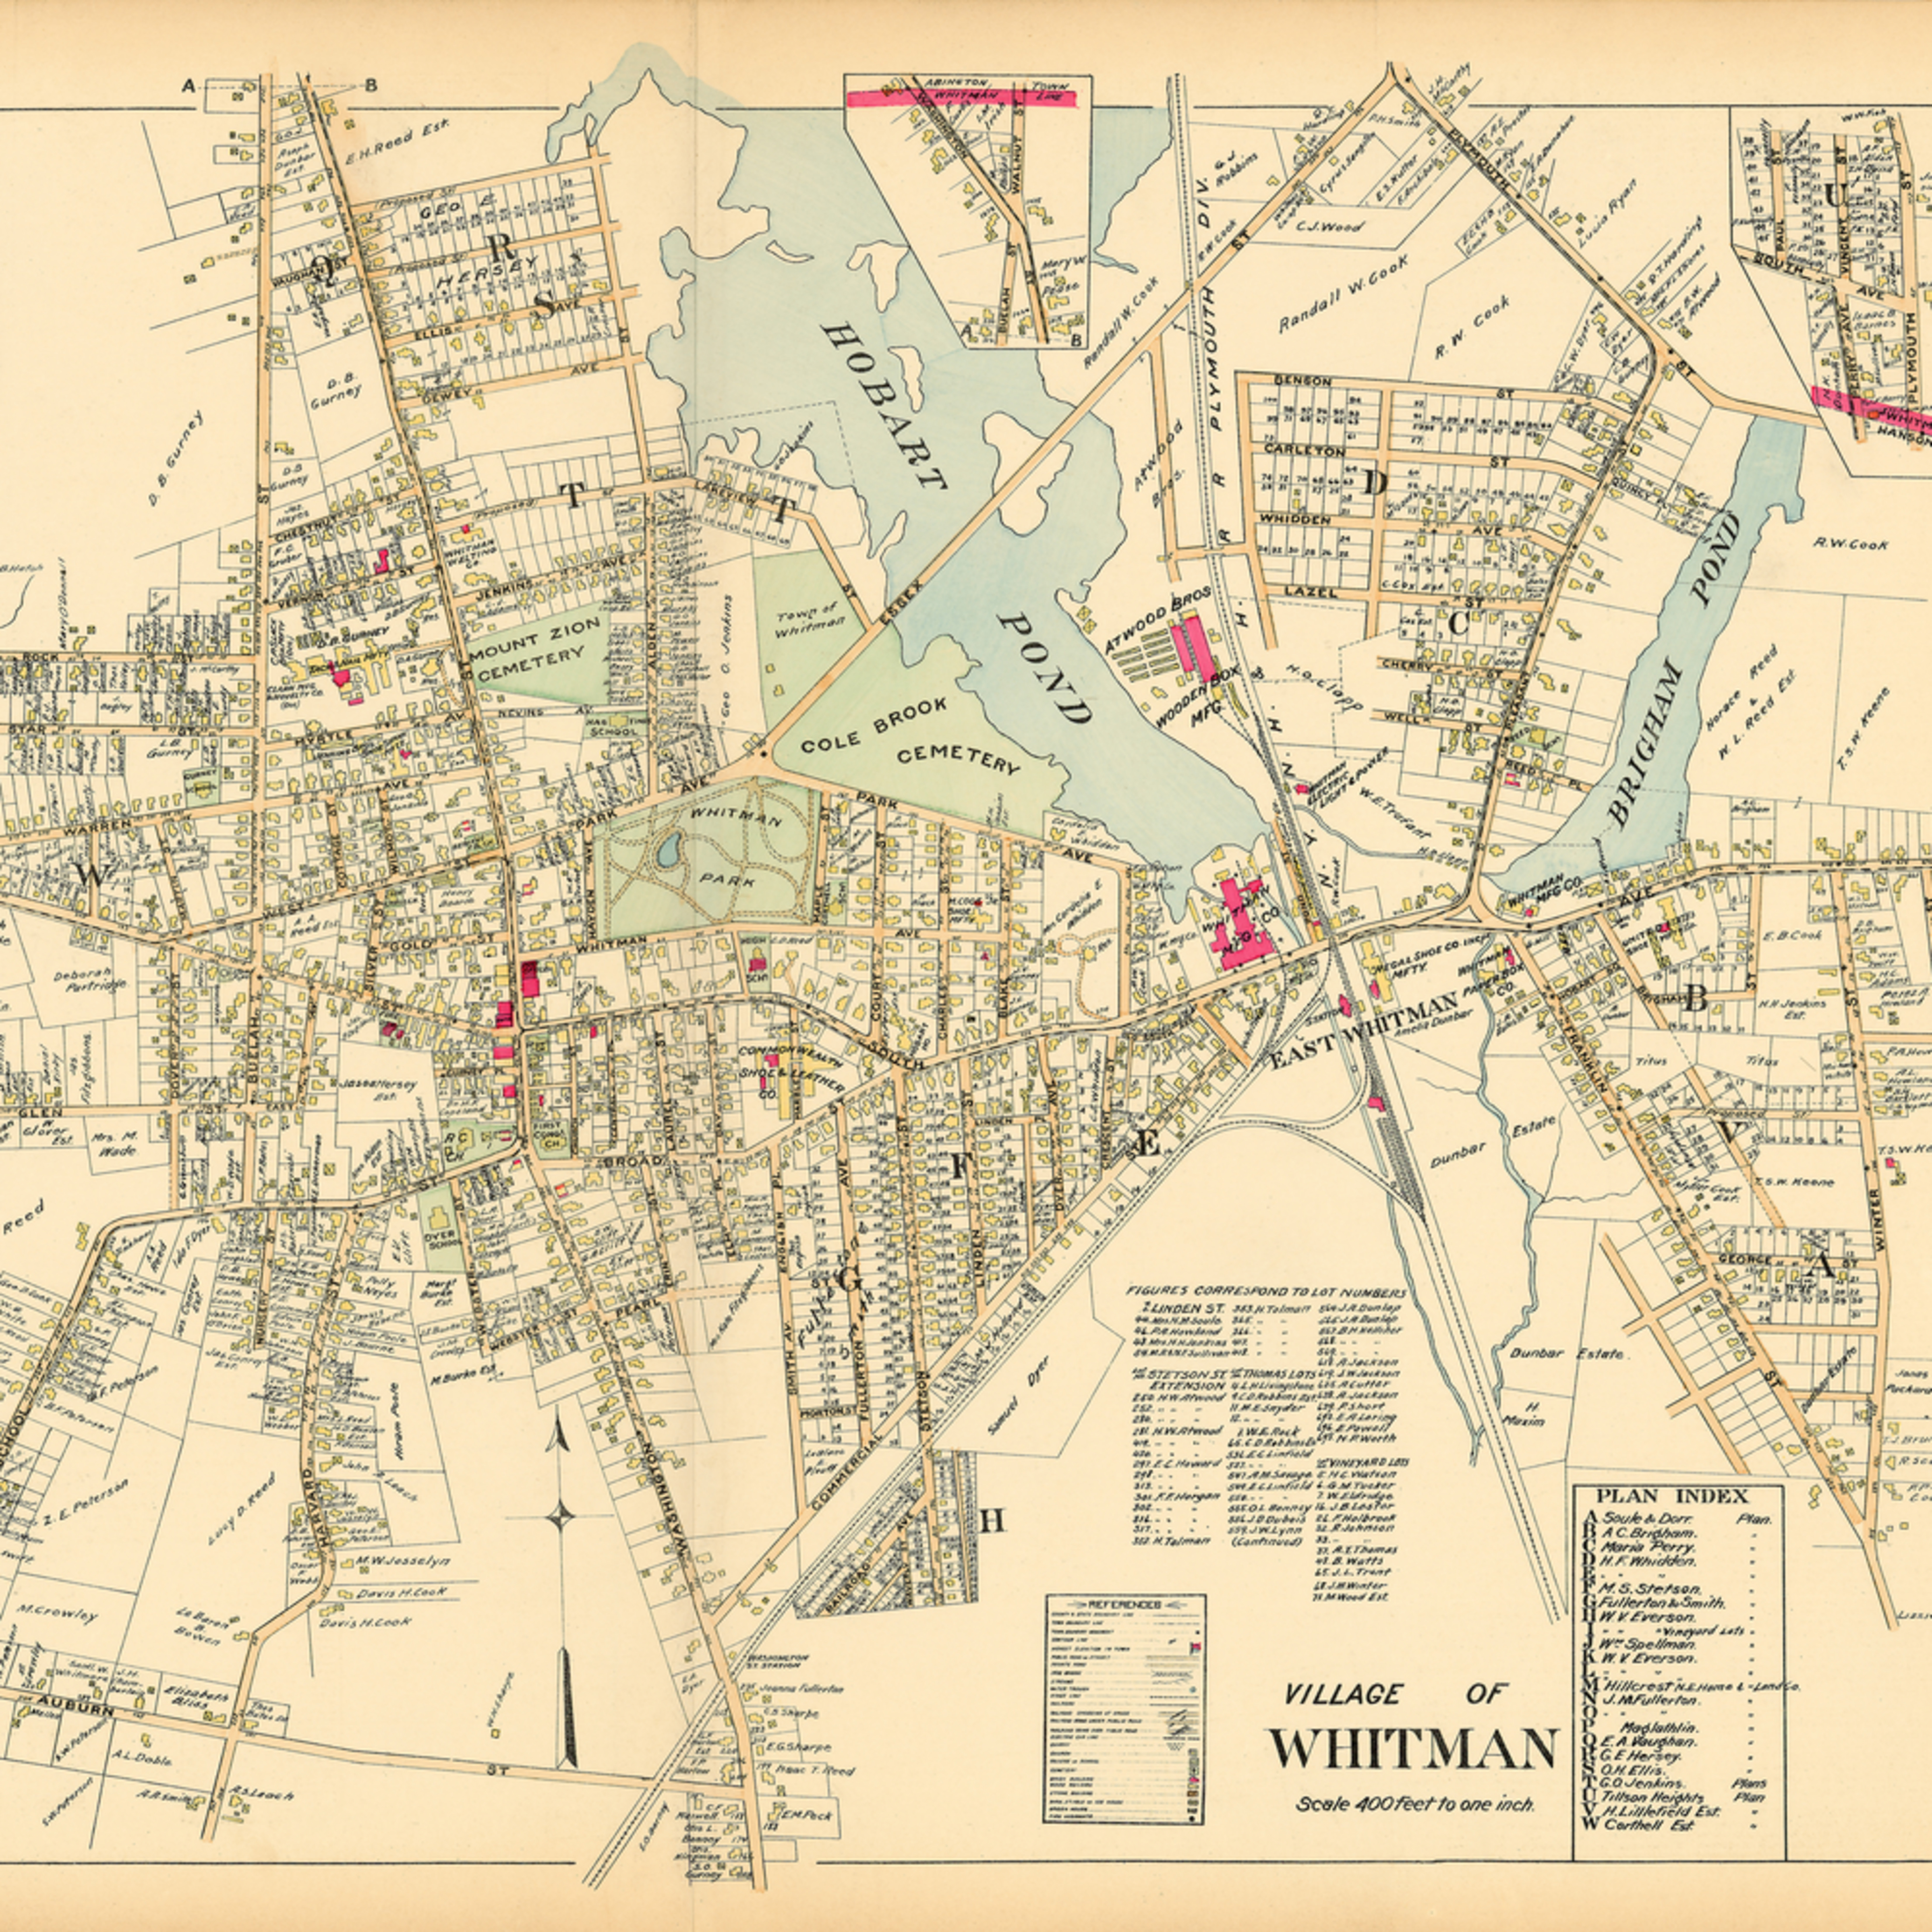 048 p3 whitman village1903plate7 names 22x38 38 xapuv9